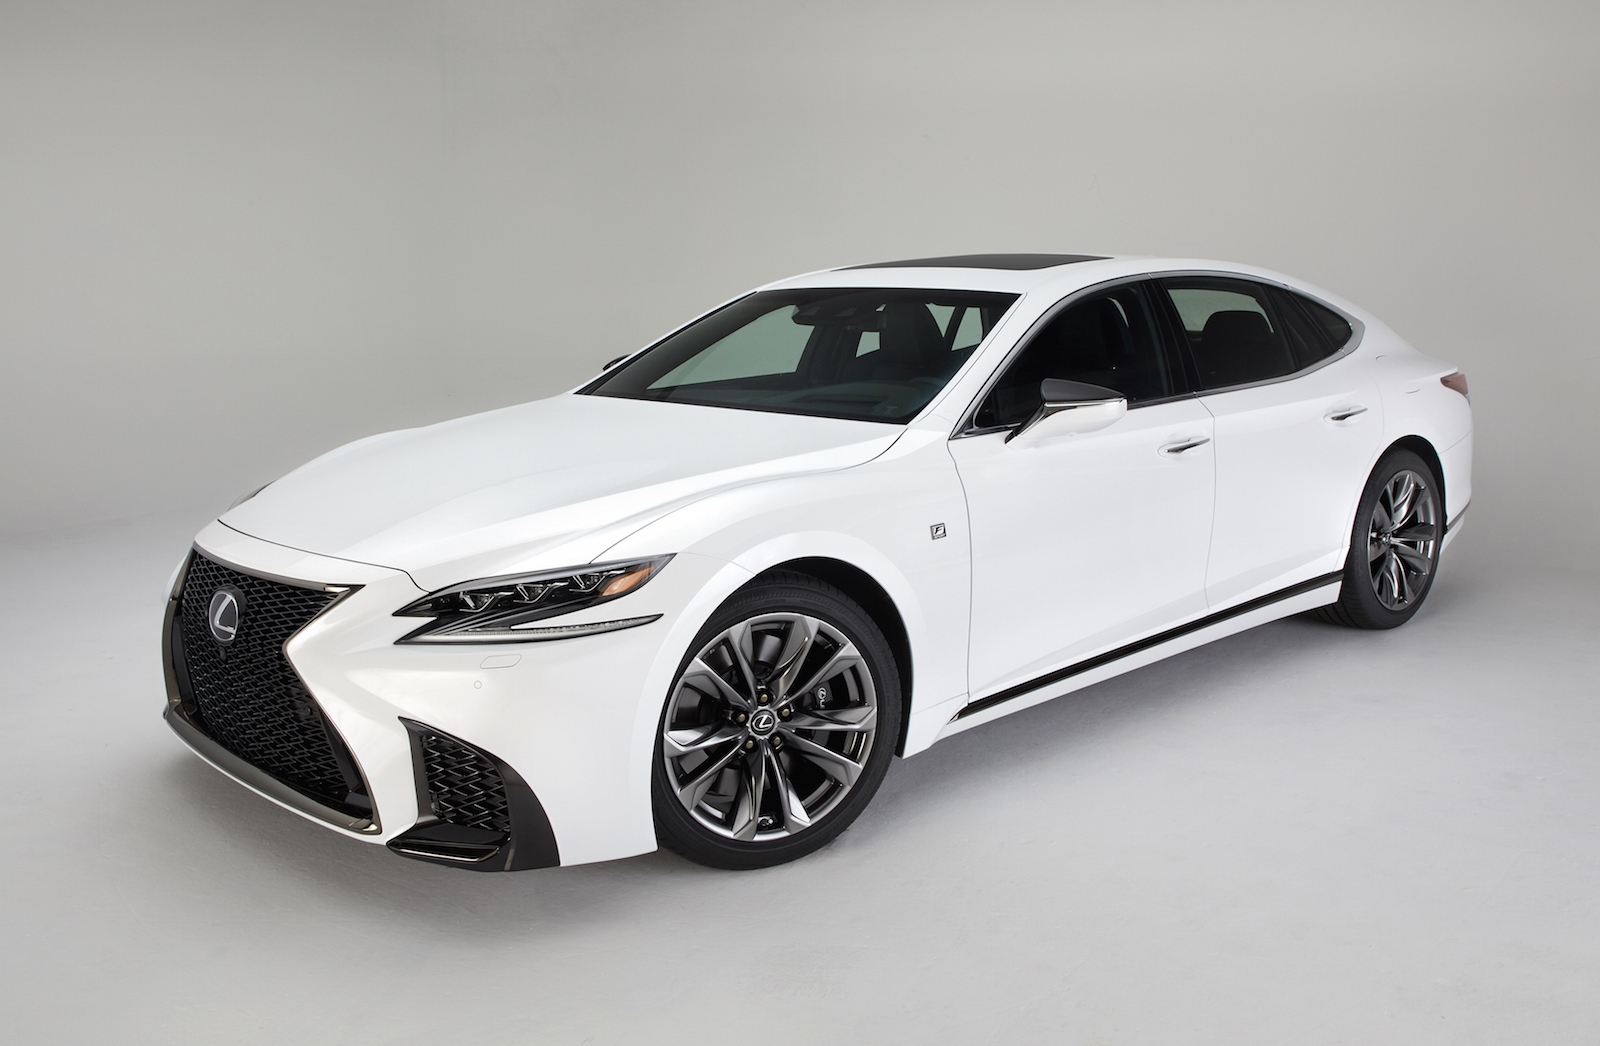 Lexus Is 350 2018 >> 2018 Lexus LS F Sport pack revealed, looks hot | PerformanceDrive